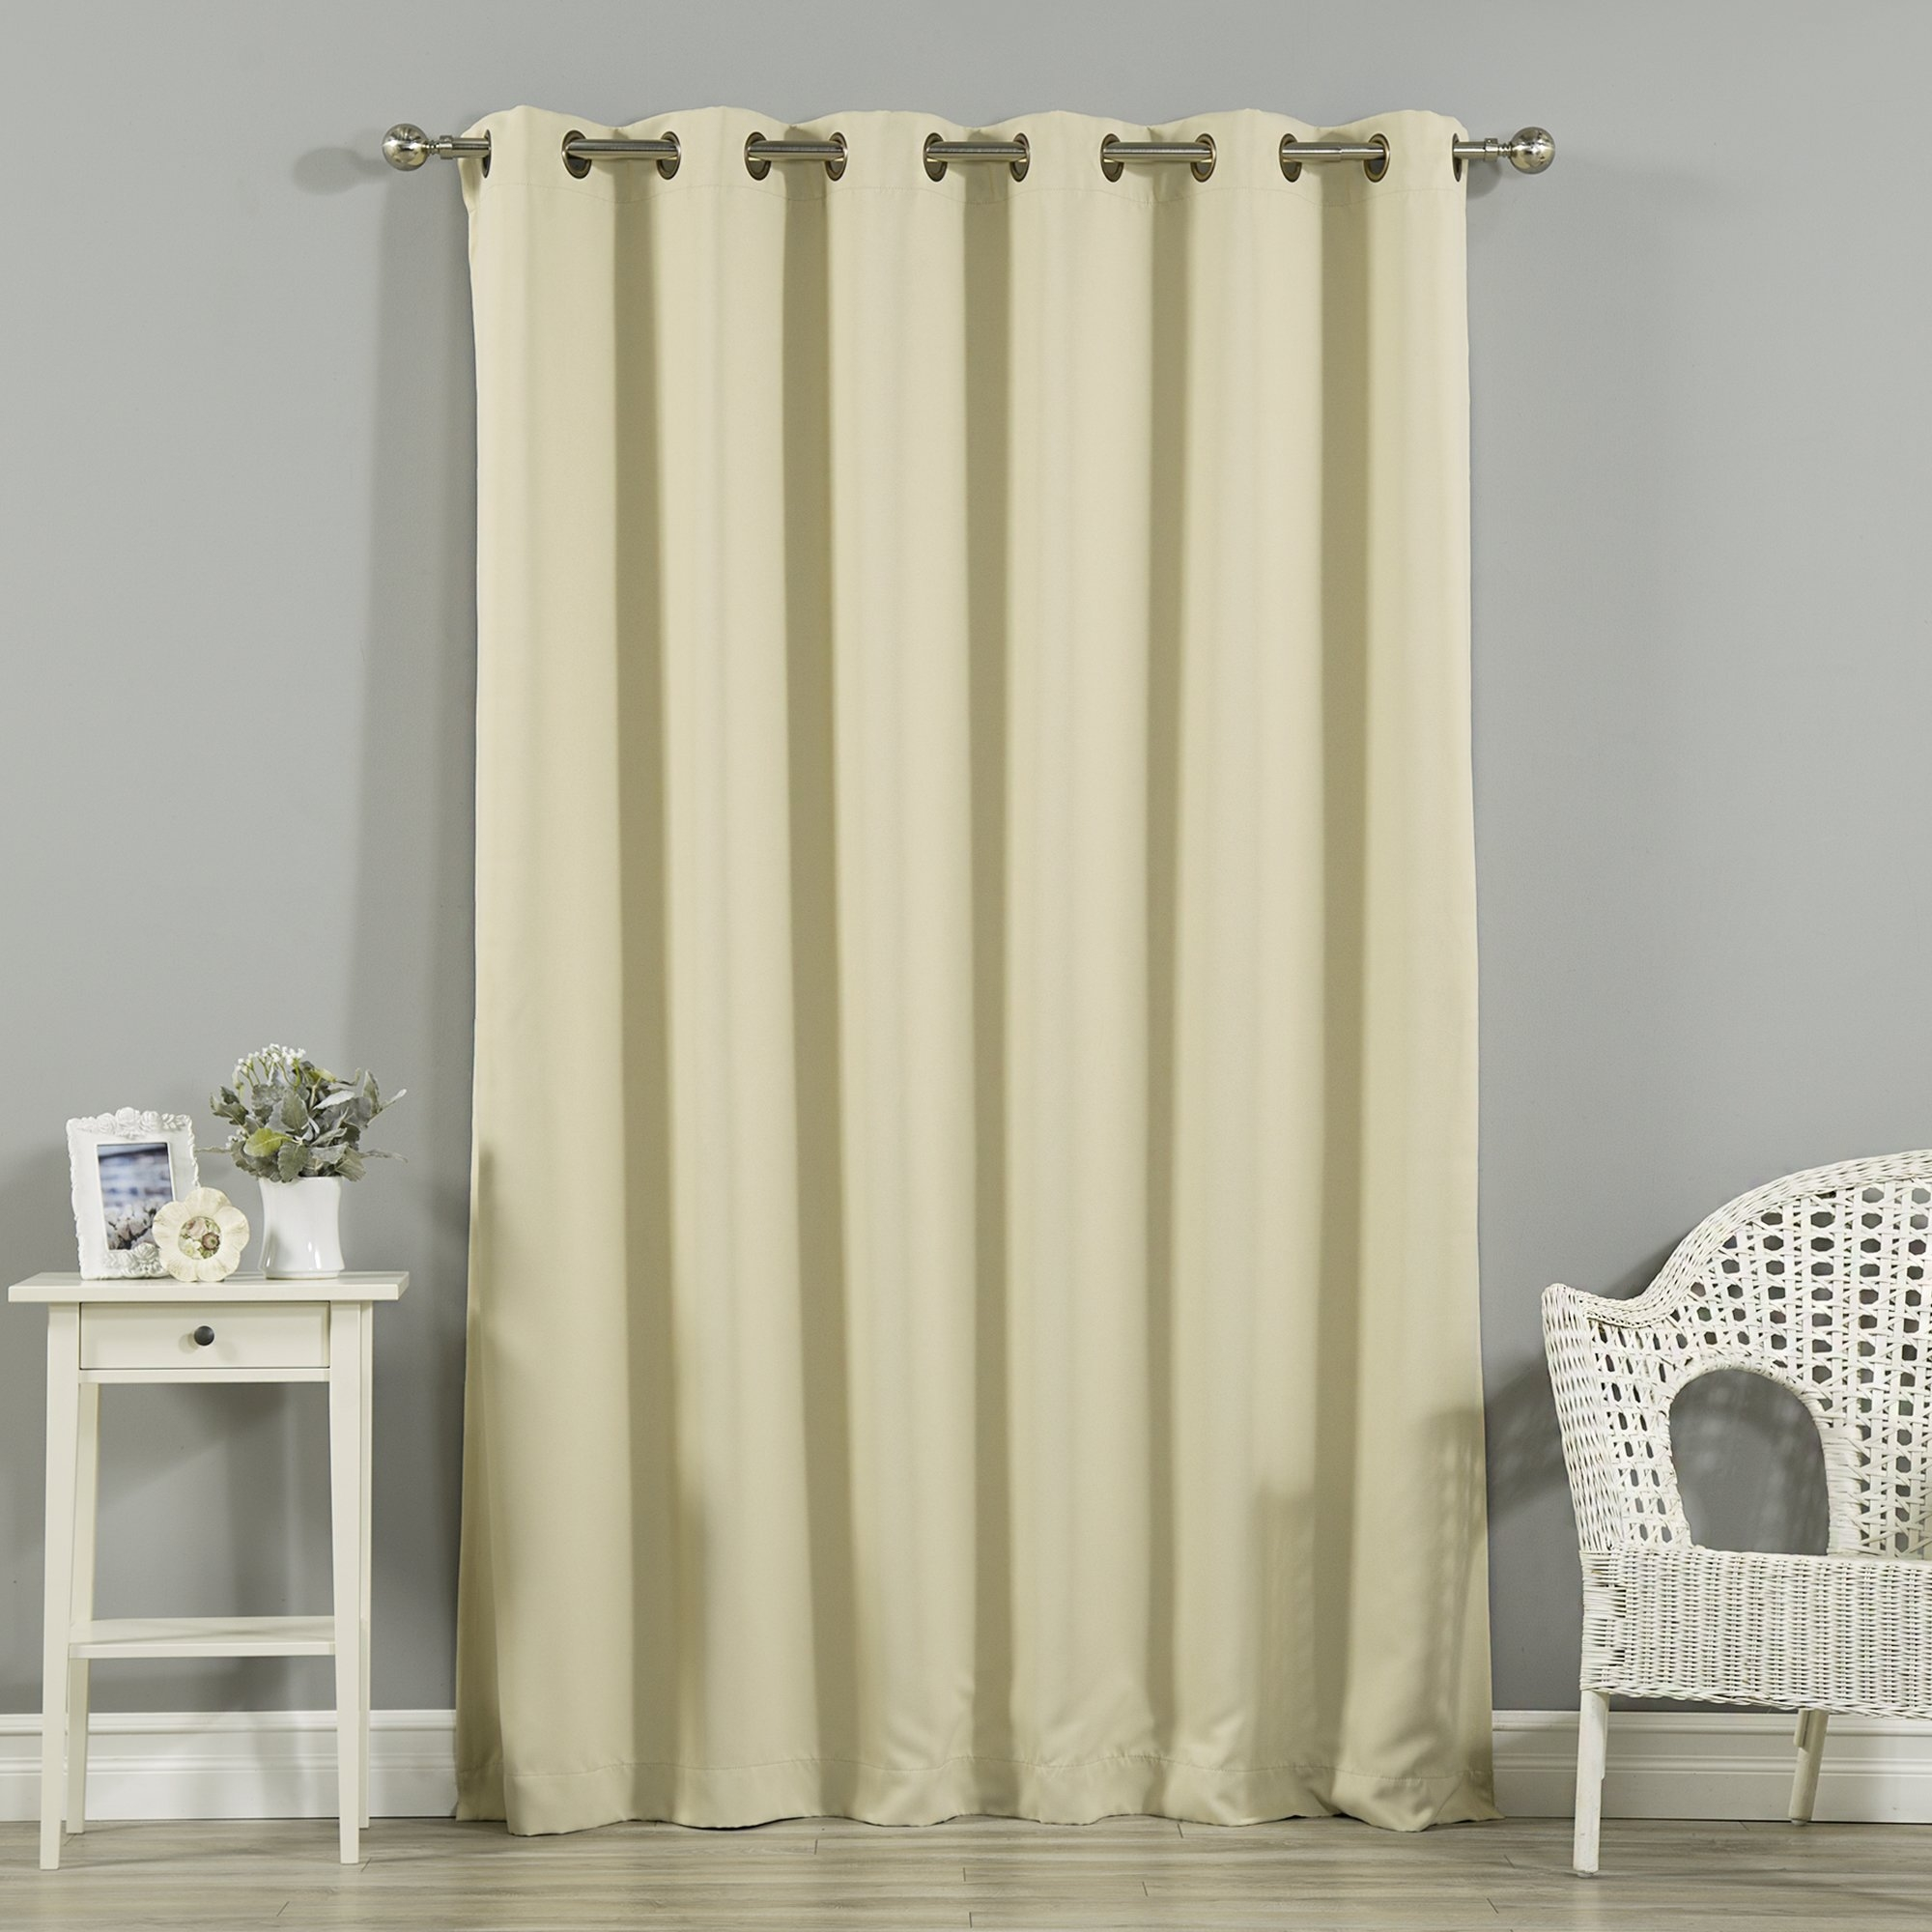 Alcott Hill Scarsdale Extra Solid Blackout Thermal Grommet Single Pertaining To Extra Wide Thermal Curtains (Image 1 of 15)